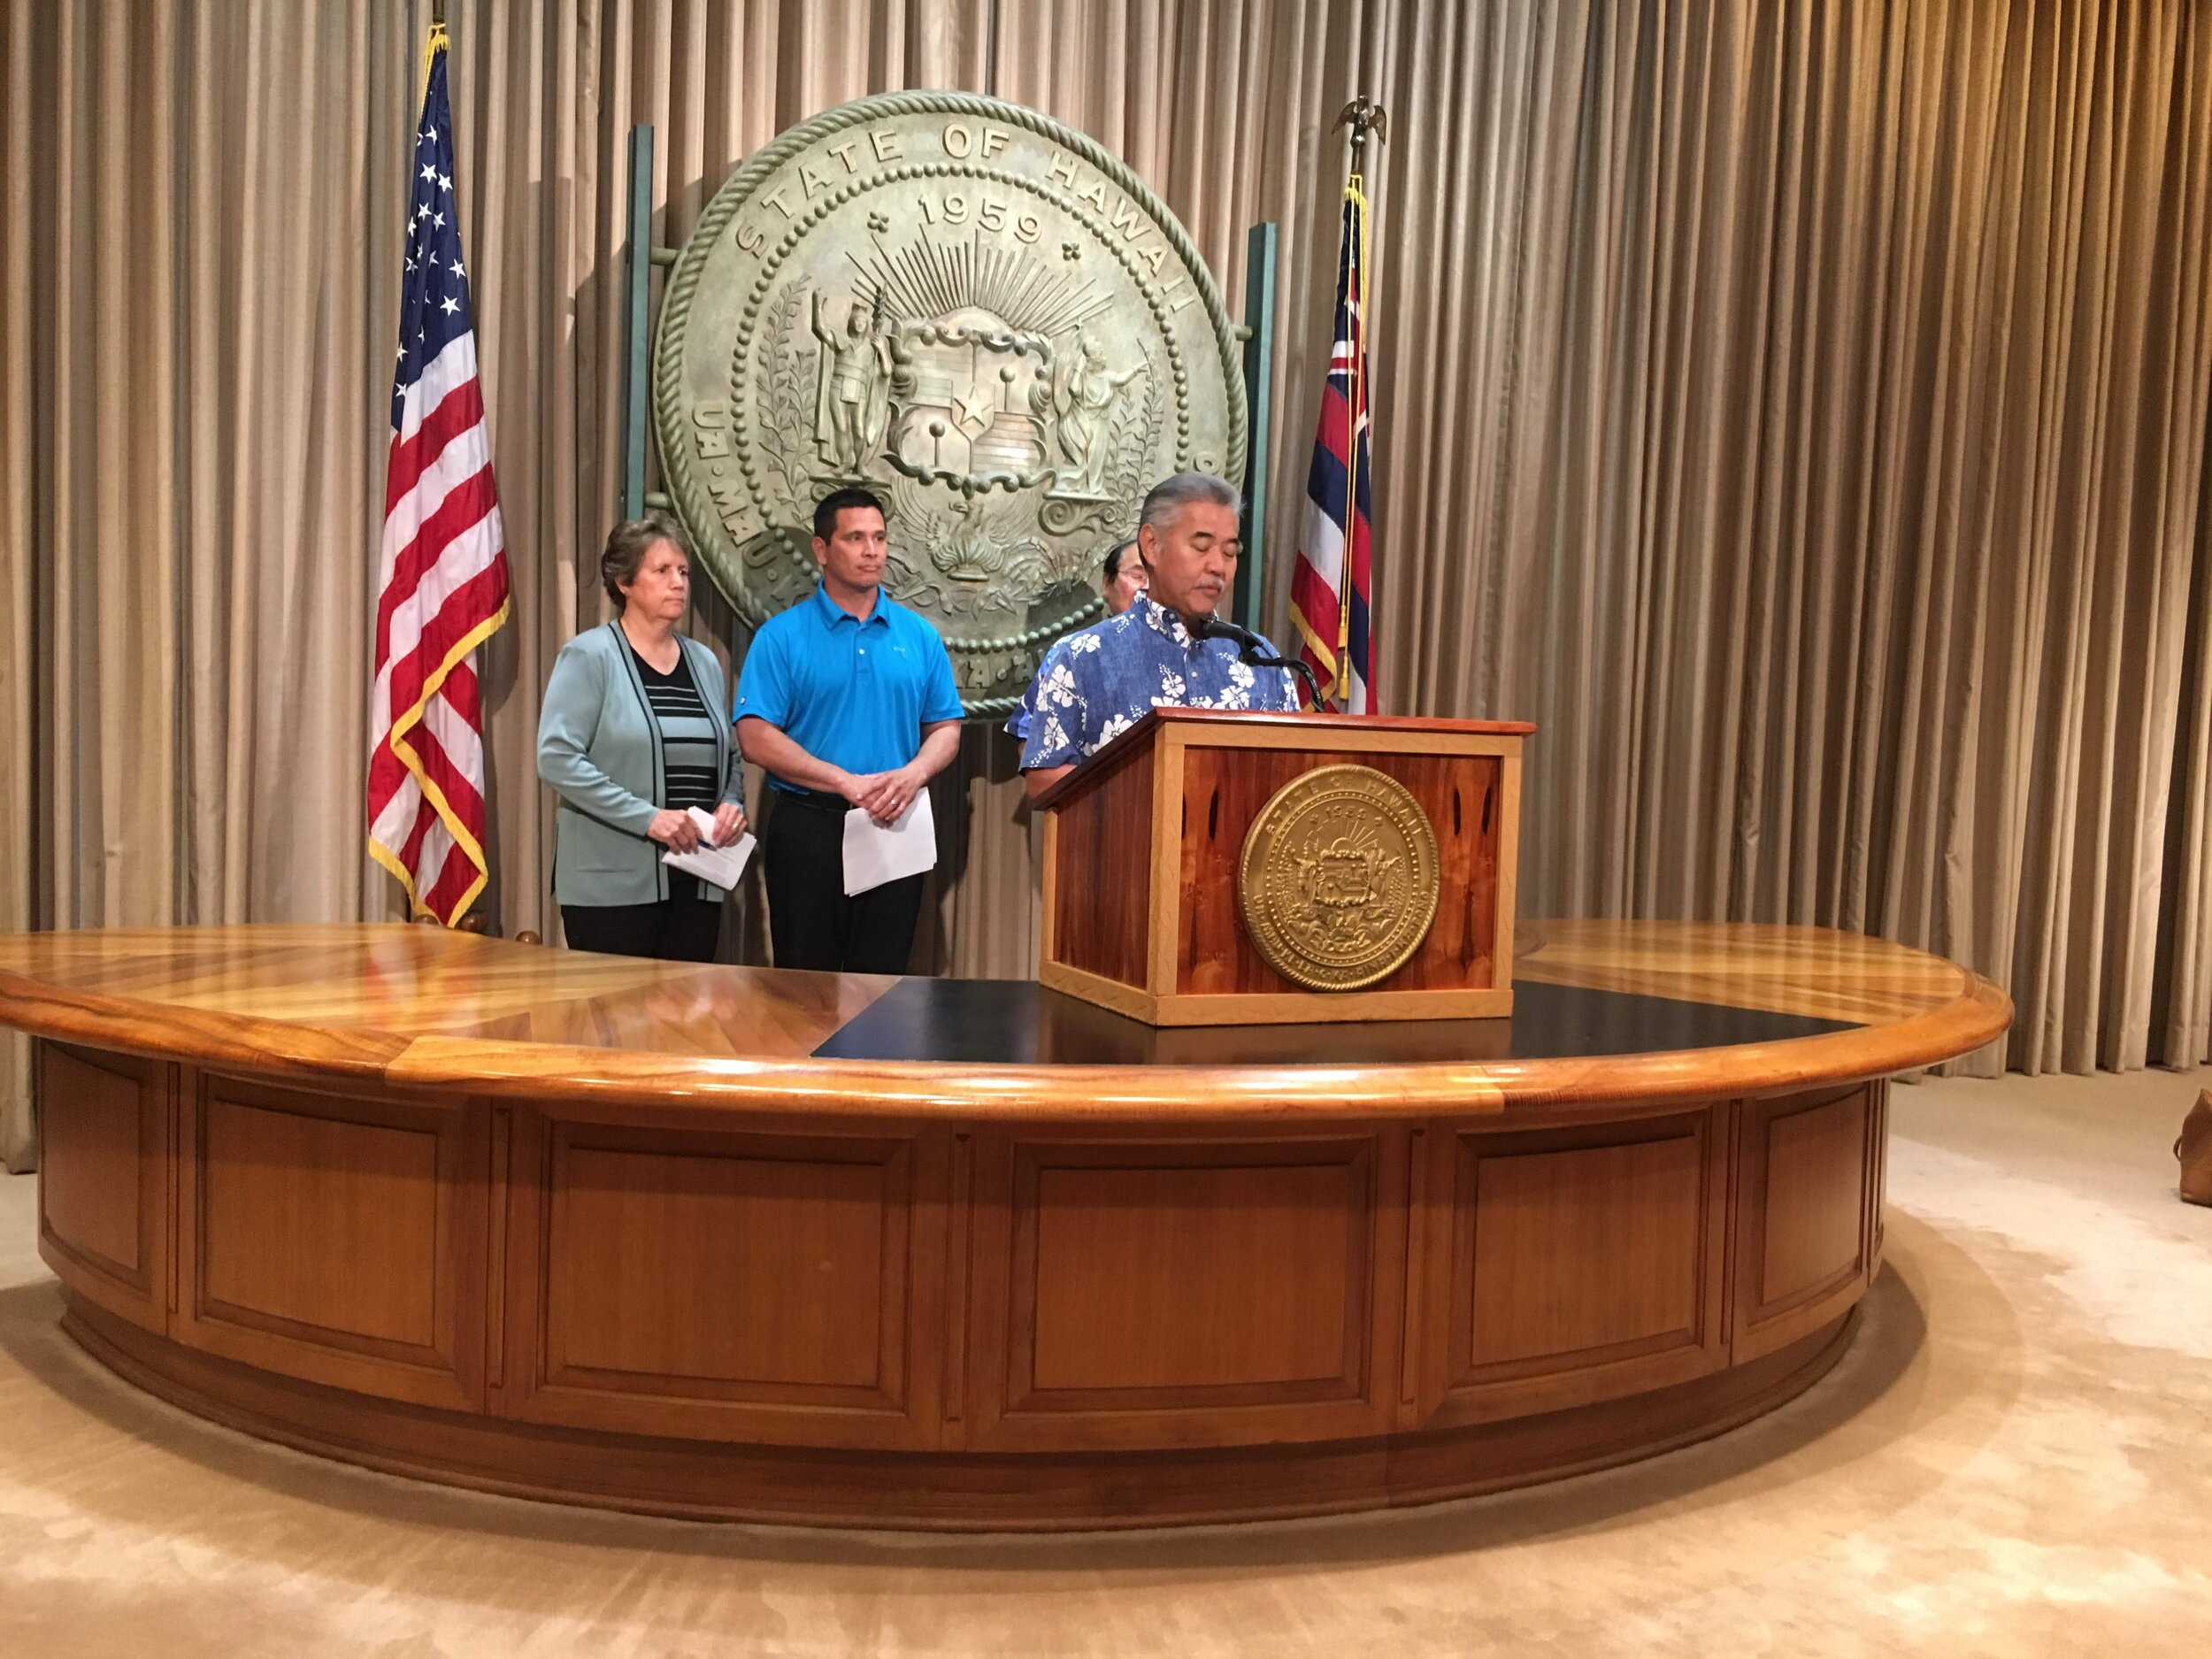 Governor David Ige discusses the TMT construction on Mauna Kea at the State Capitol. The move was backed by members of the State Department of Land and Natural Resources and the Department of Transportation. Photo by Amy Nakamura